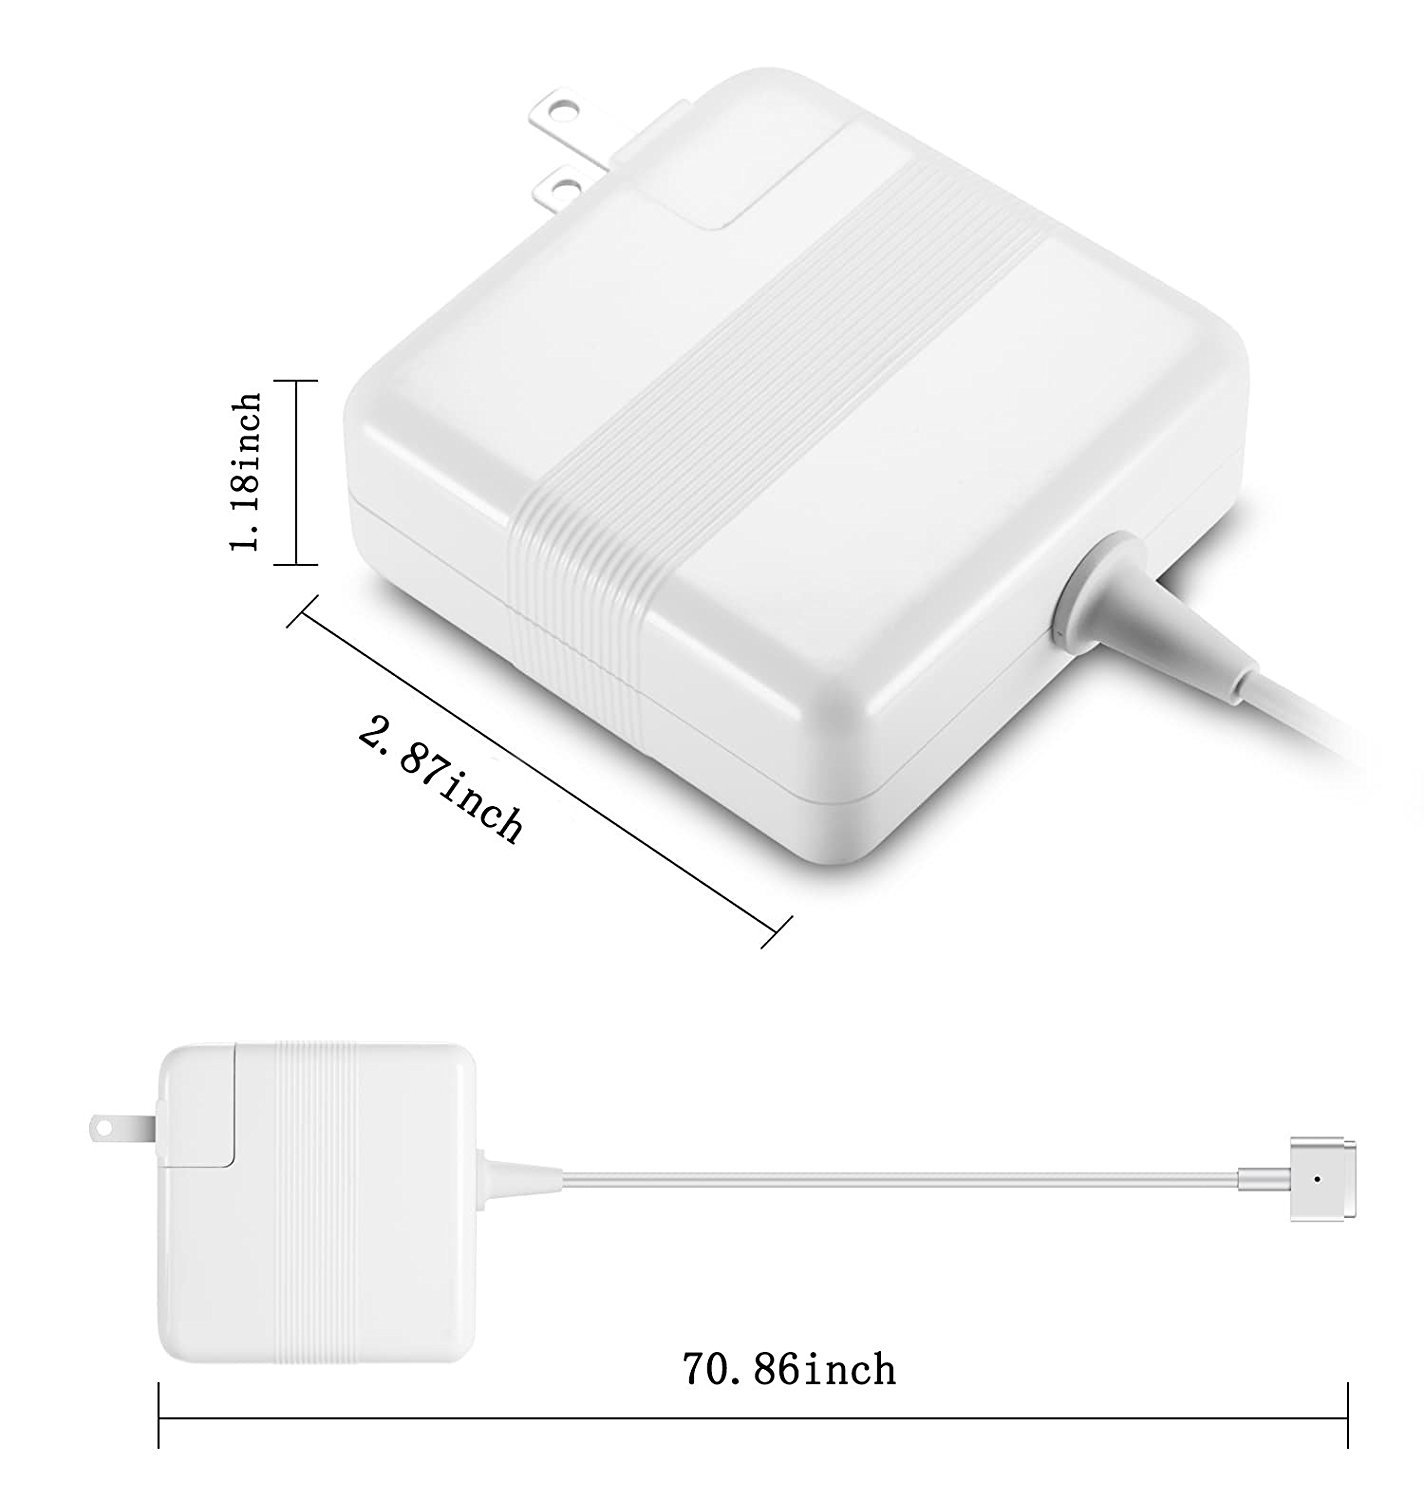 Macbook Pro Charger, 60W Macbook Magsafe 2 Charger with T-Tip, 60W Magsafe 2 Charger Power Adapter for MacBook Pro/Air 13 Inch (Mid 2012 Later Model)